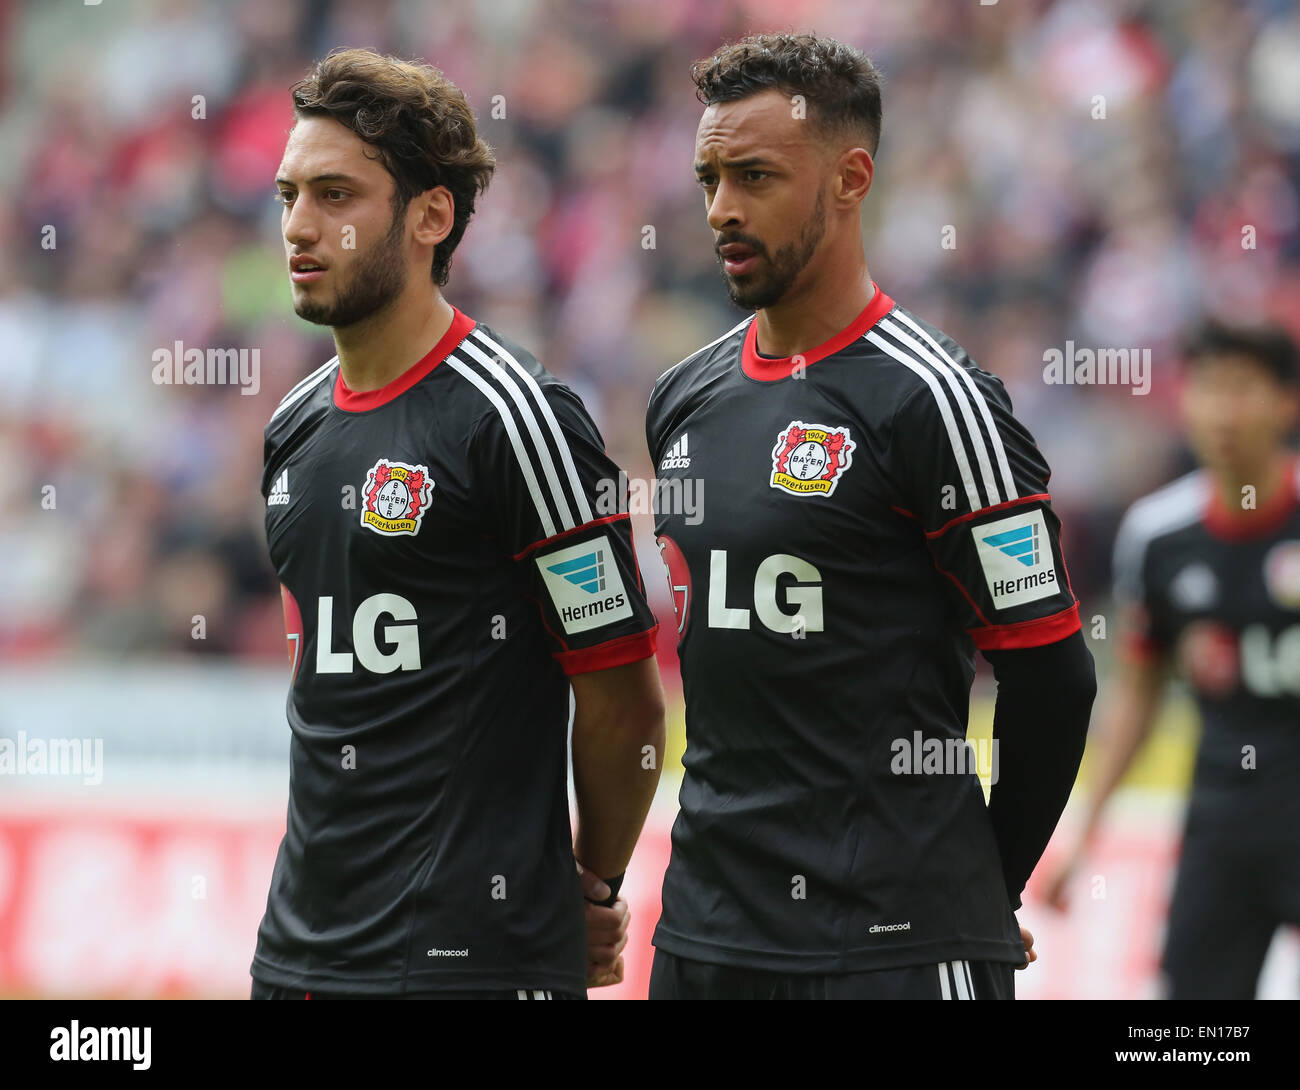 Cologne, Germany, 25Apr 2015. Bundesliga, 1. FC Koeln vs Bayer Leverkusen. Karim Bellarabi (Leverkusen, R) beside - Stock Image